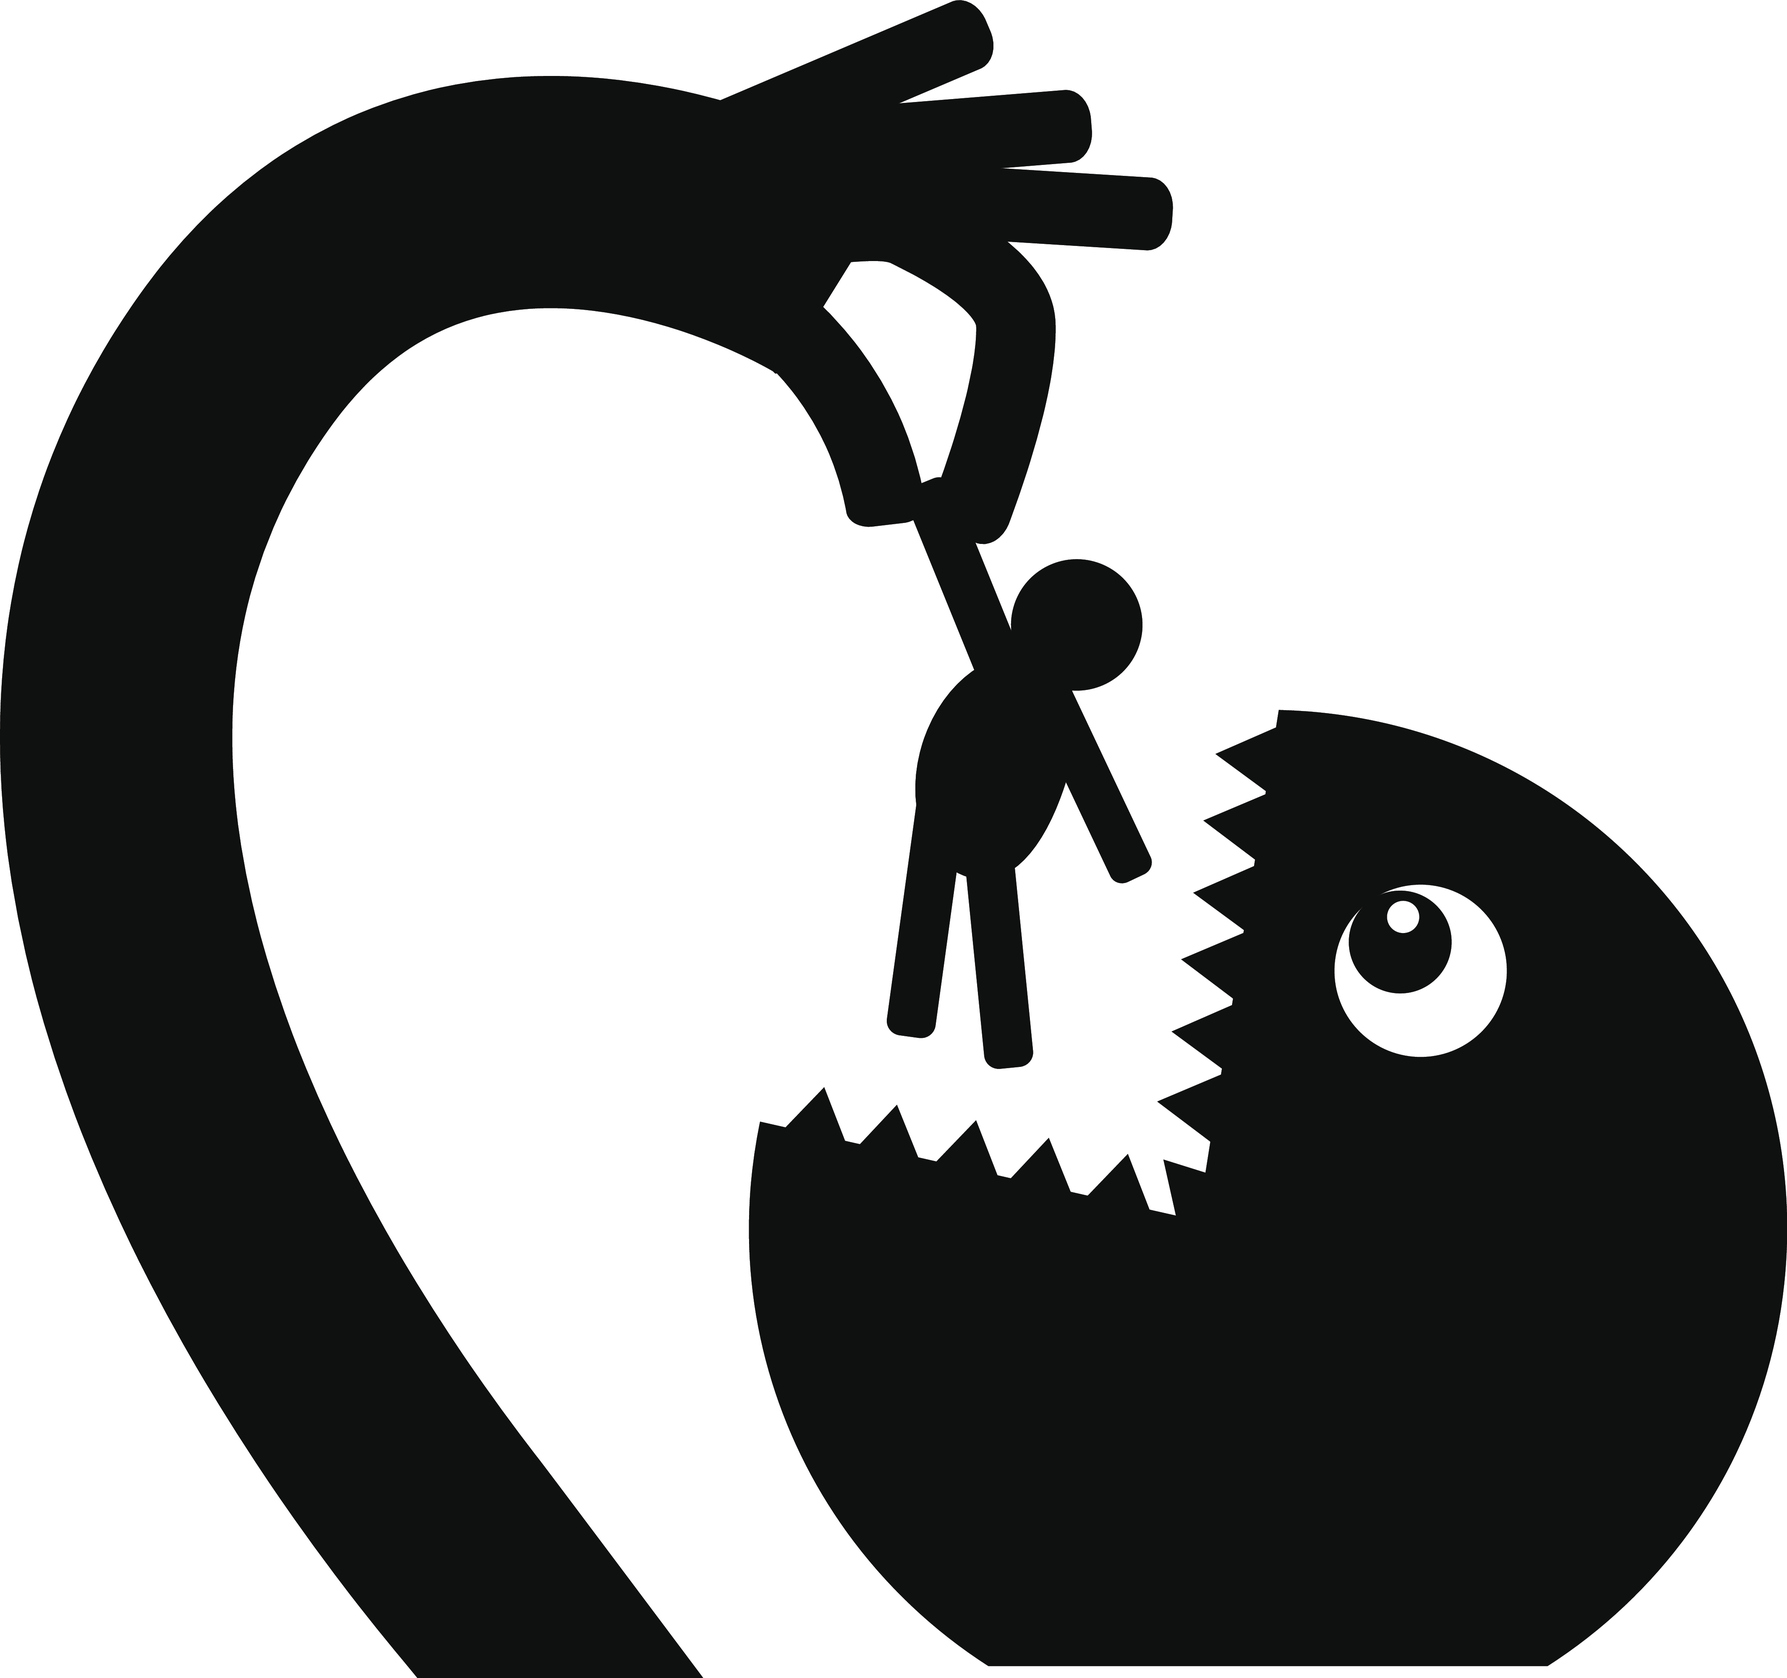 Black monster silhouette holds a limp person in his hand and is going to eat him (Thinkstock/PA)